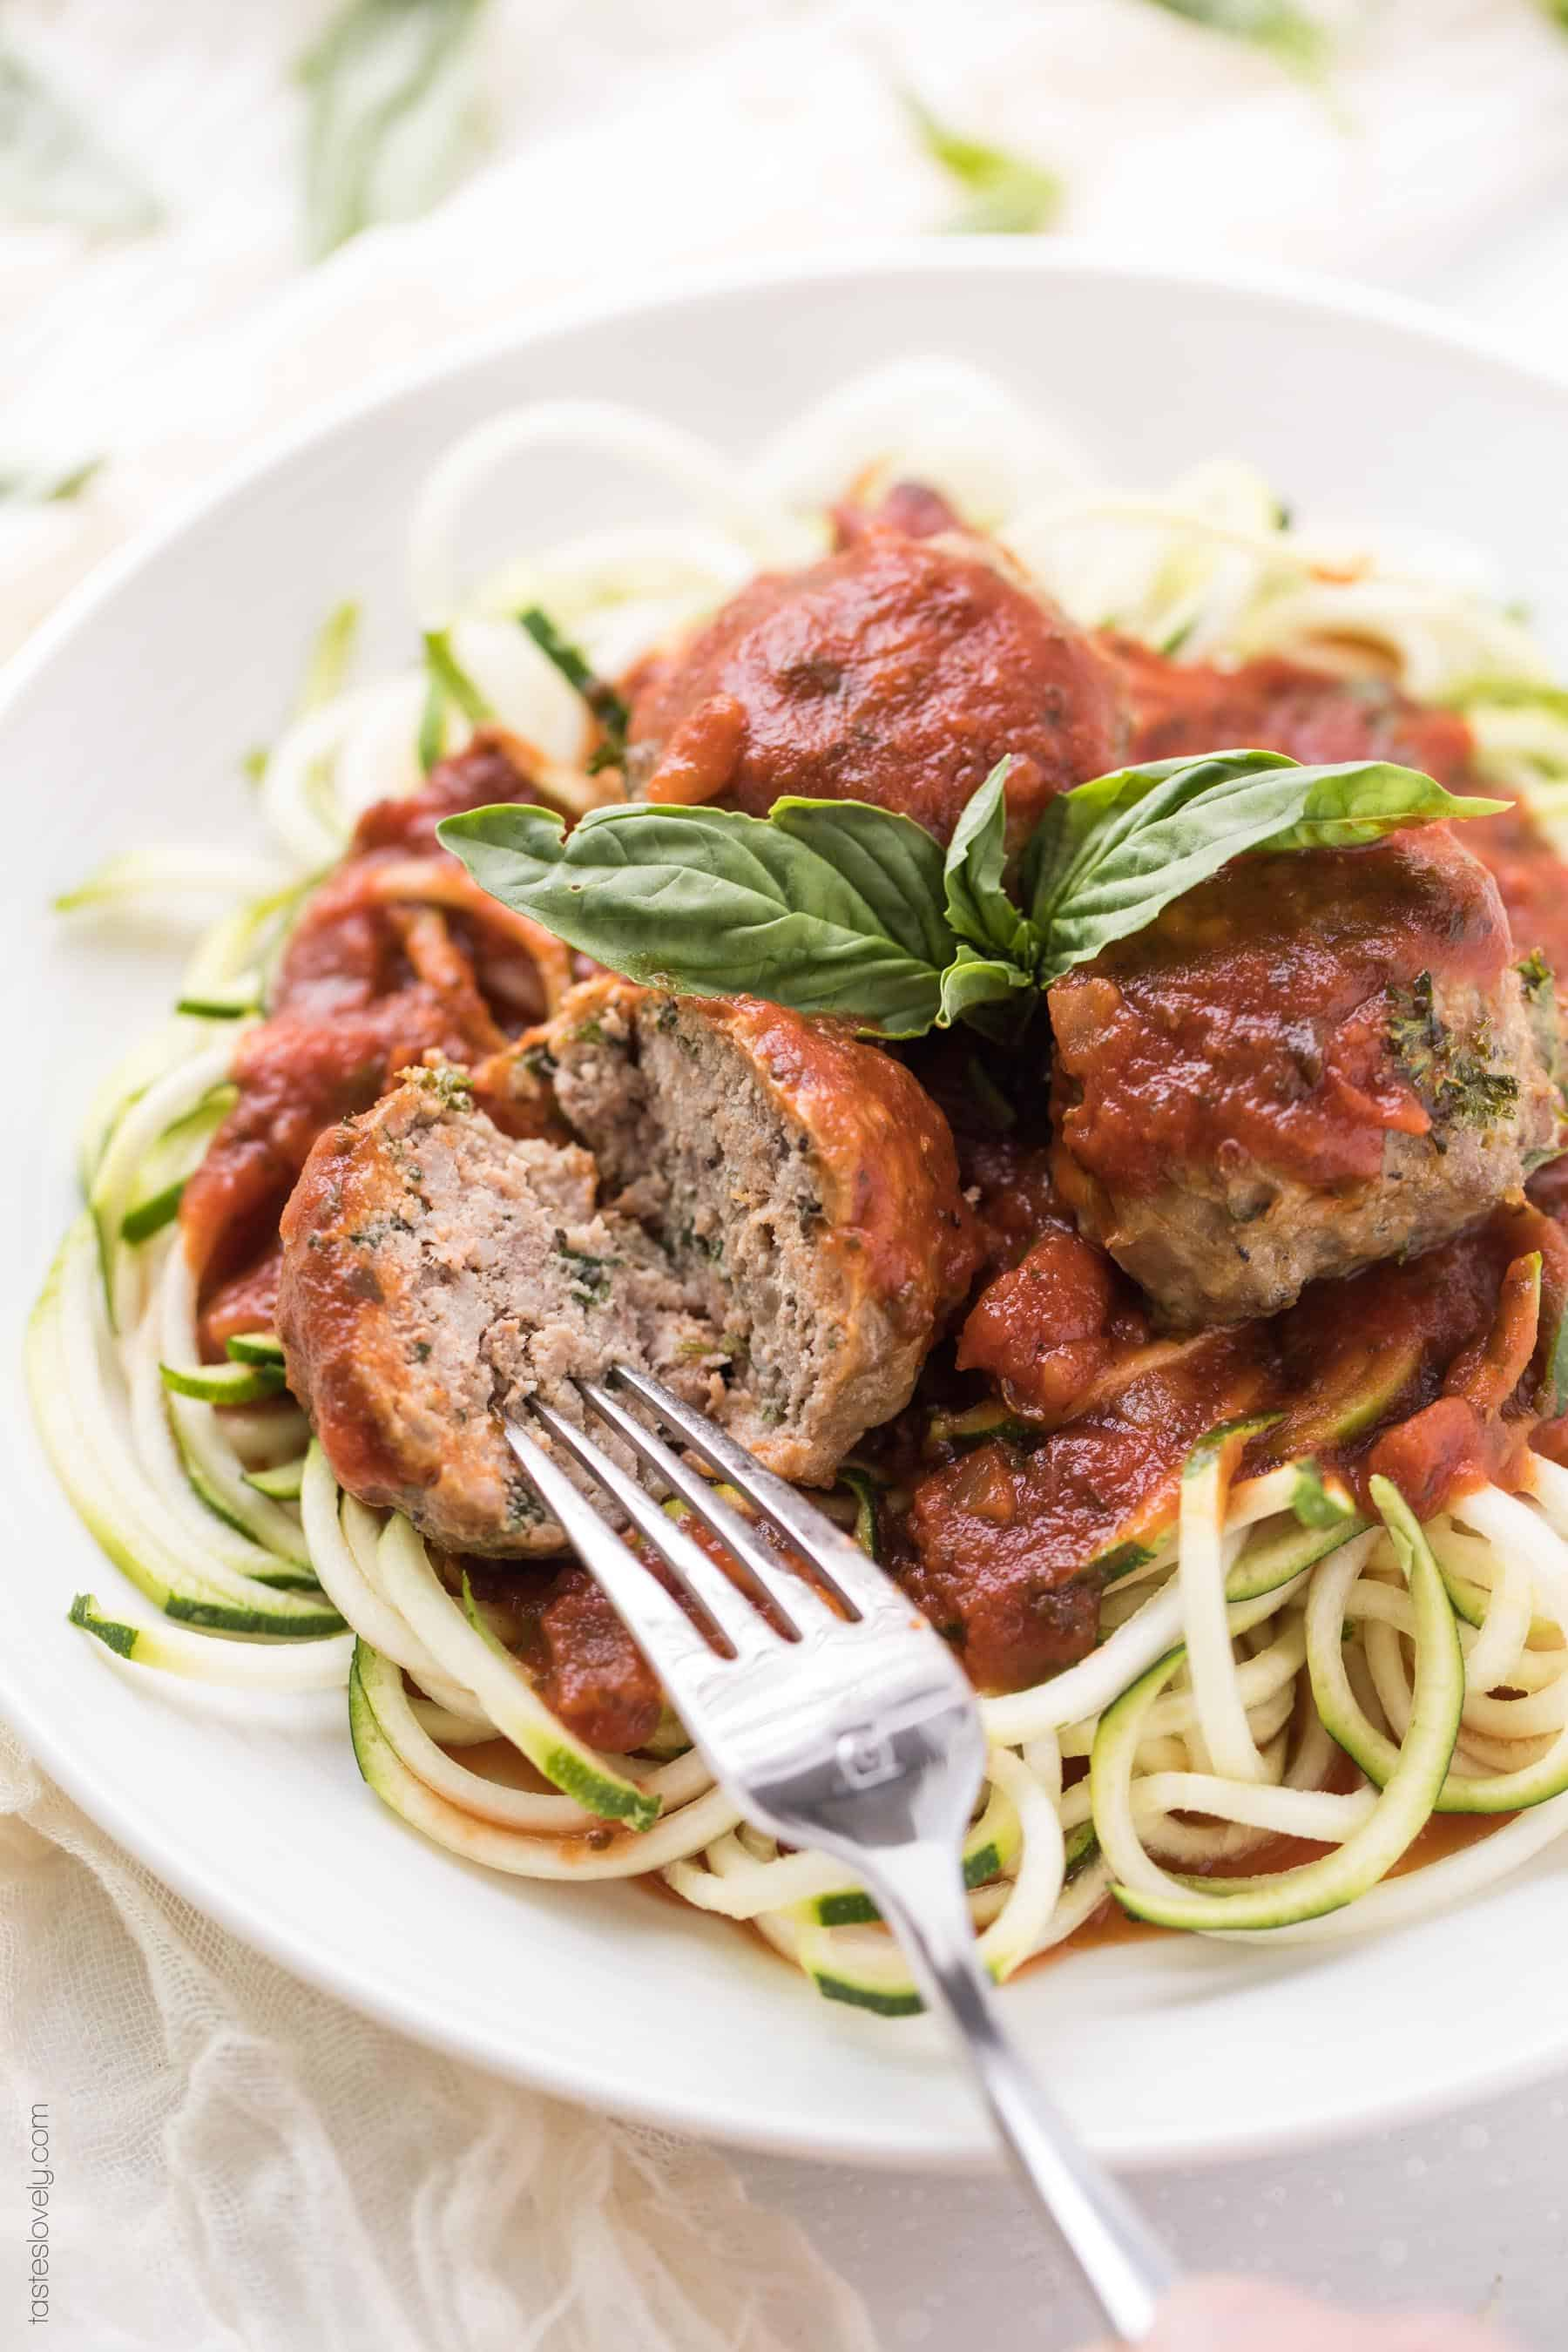 Easy Paleo & Whole30 Italian Meatballs Recipe - made with almond flour and served with marinara sauce over zoodles. The most delicious, moist, flavorful meatballs! Gluten free, grain free, dairy free, sugar free, clean eating, freezer friendly.